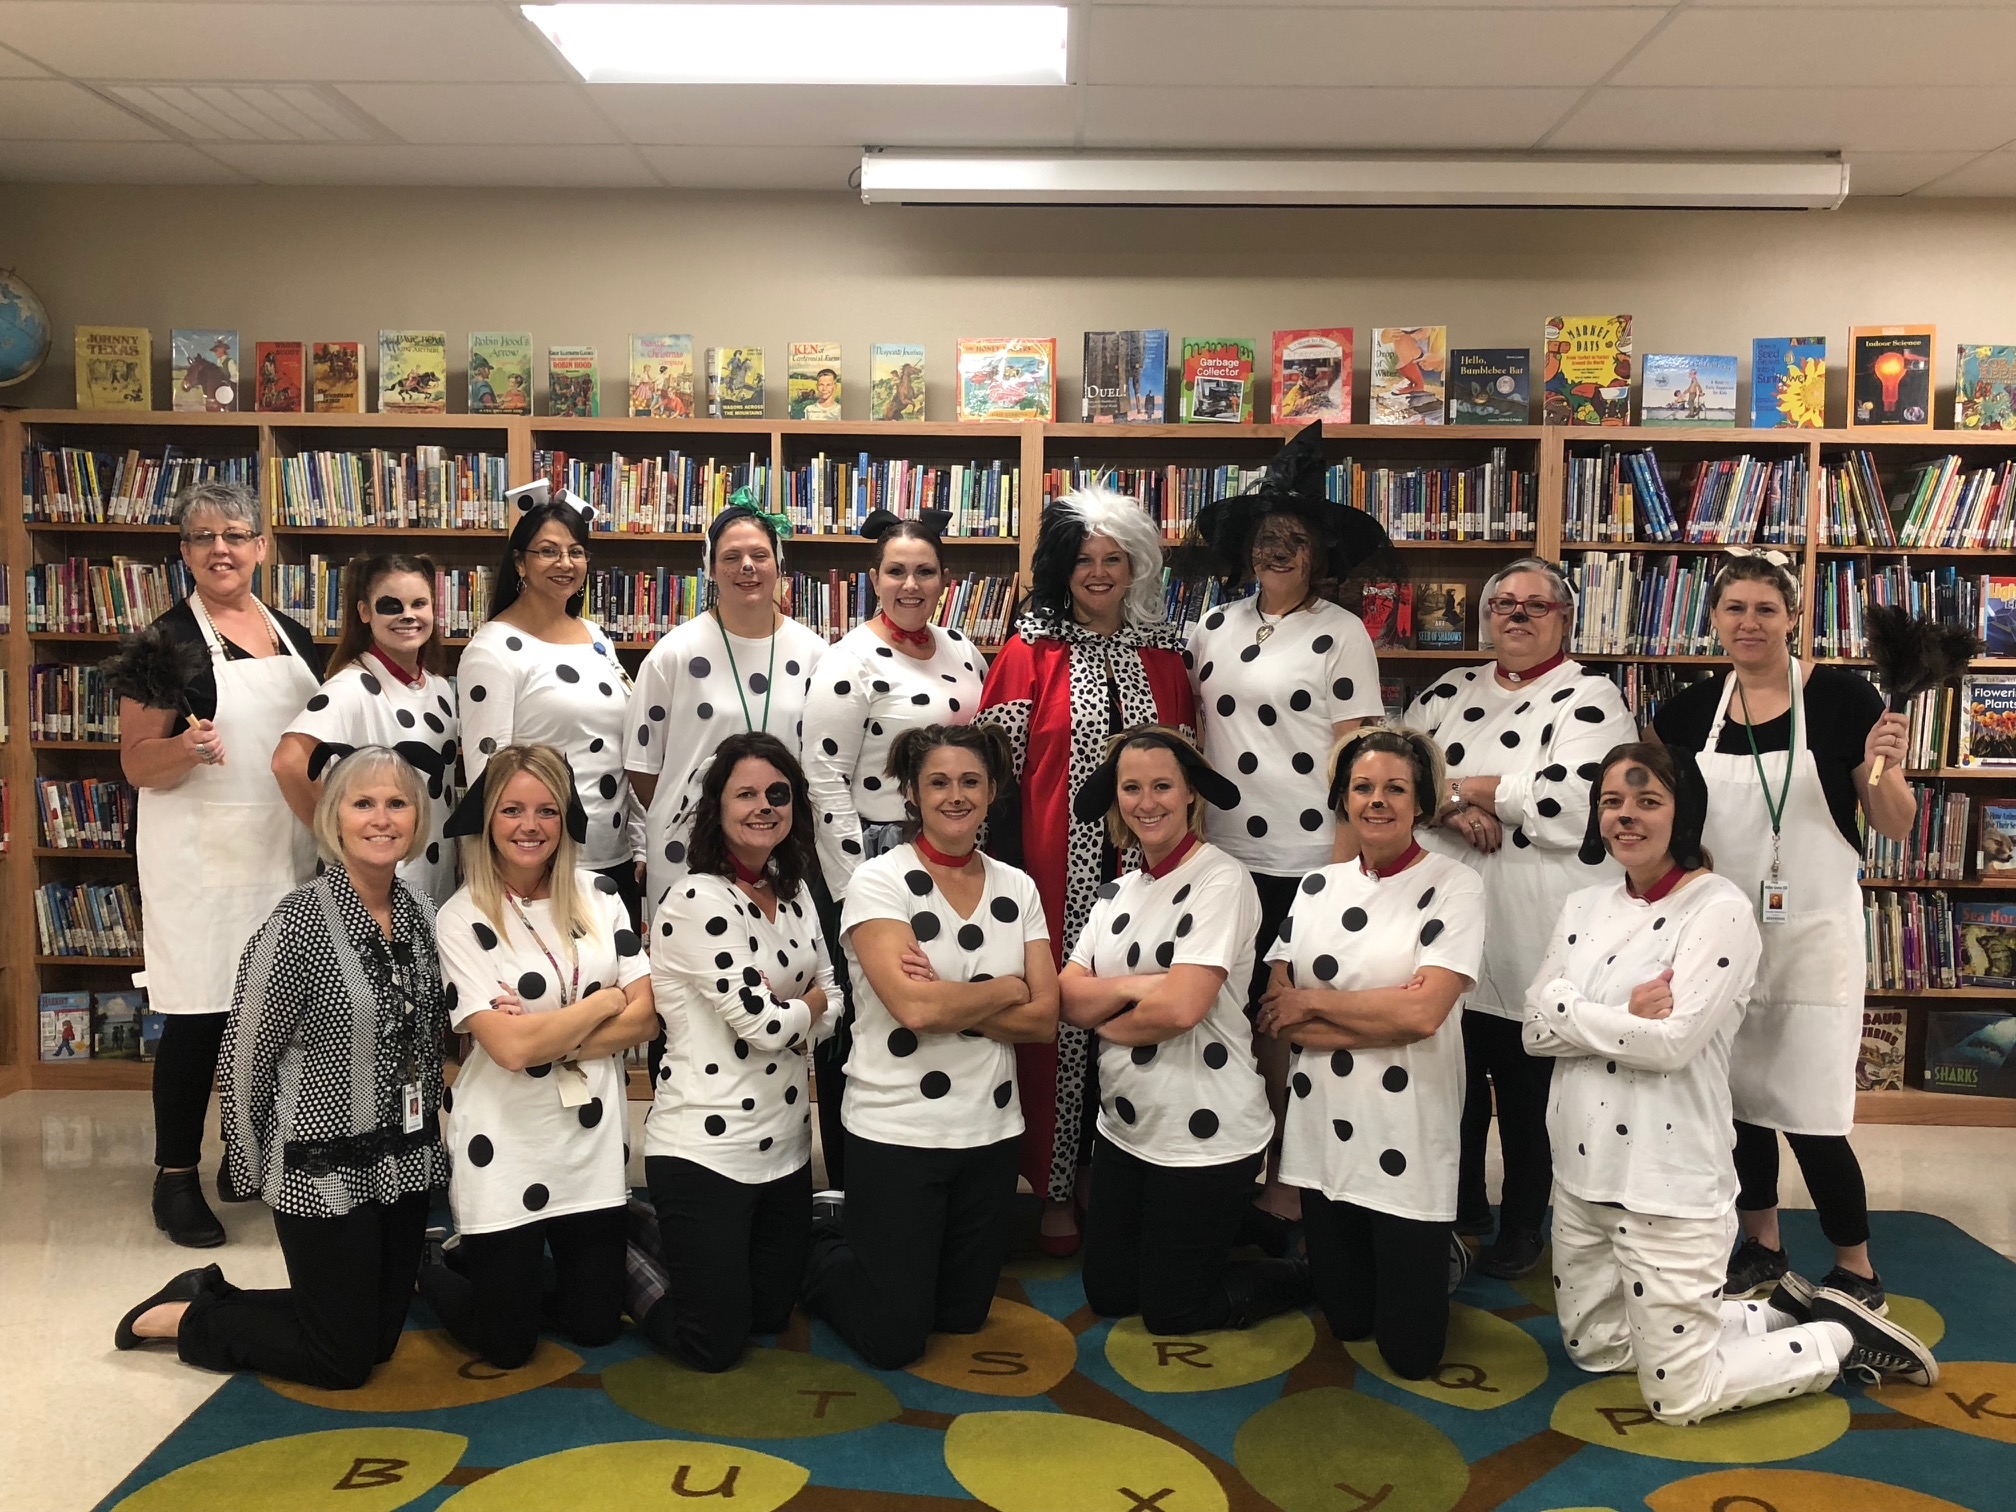 It's Halloween at Miller Grove Elementary